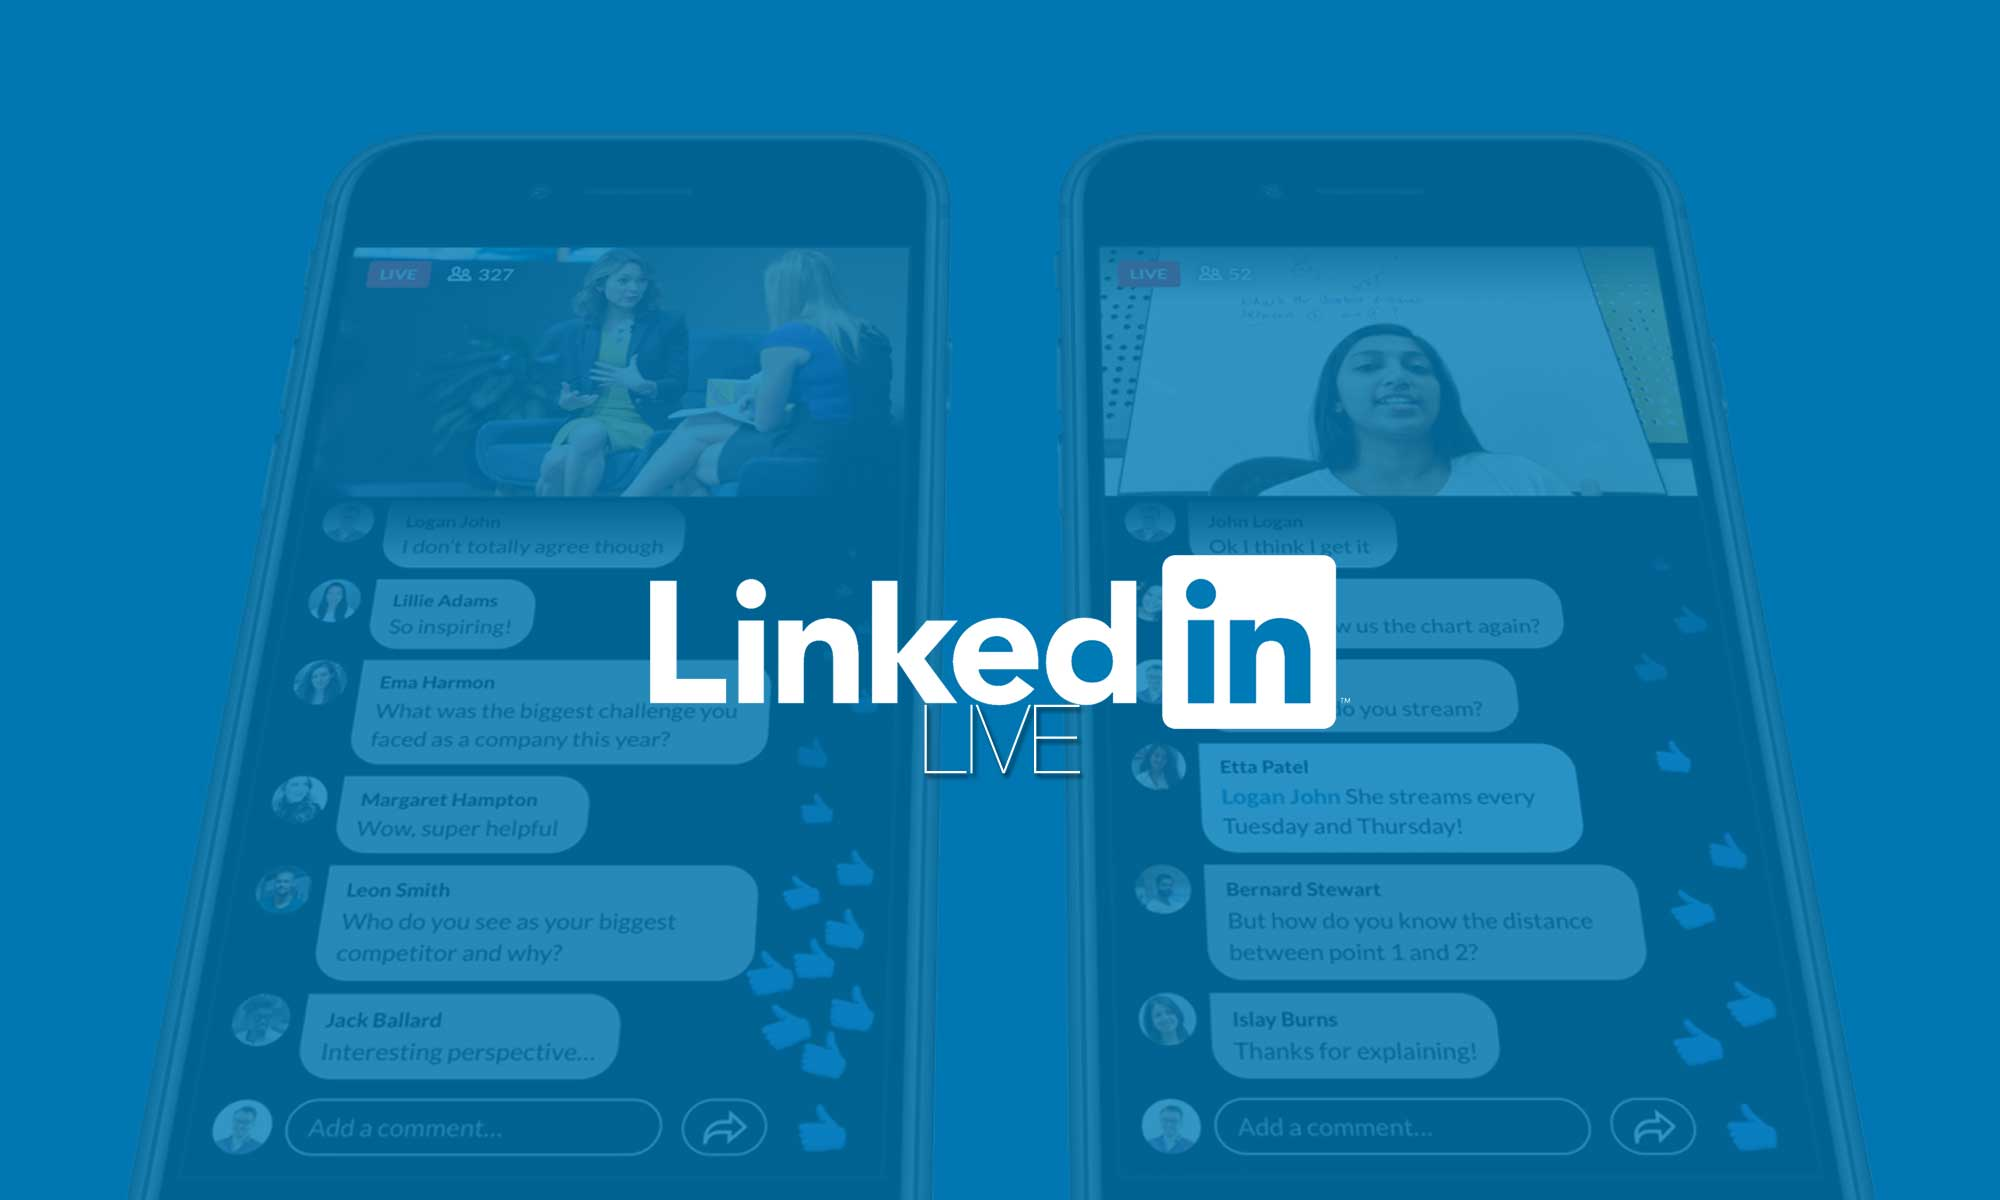 LinkedIn-Live-is-here